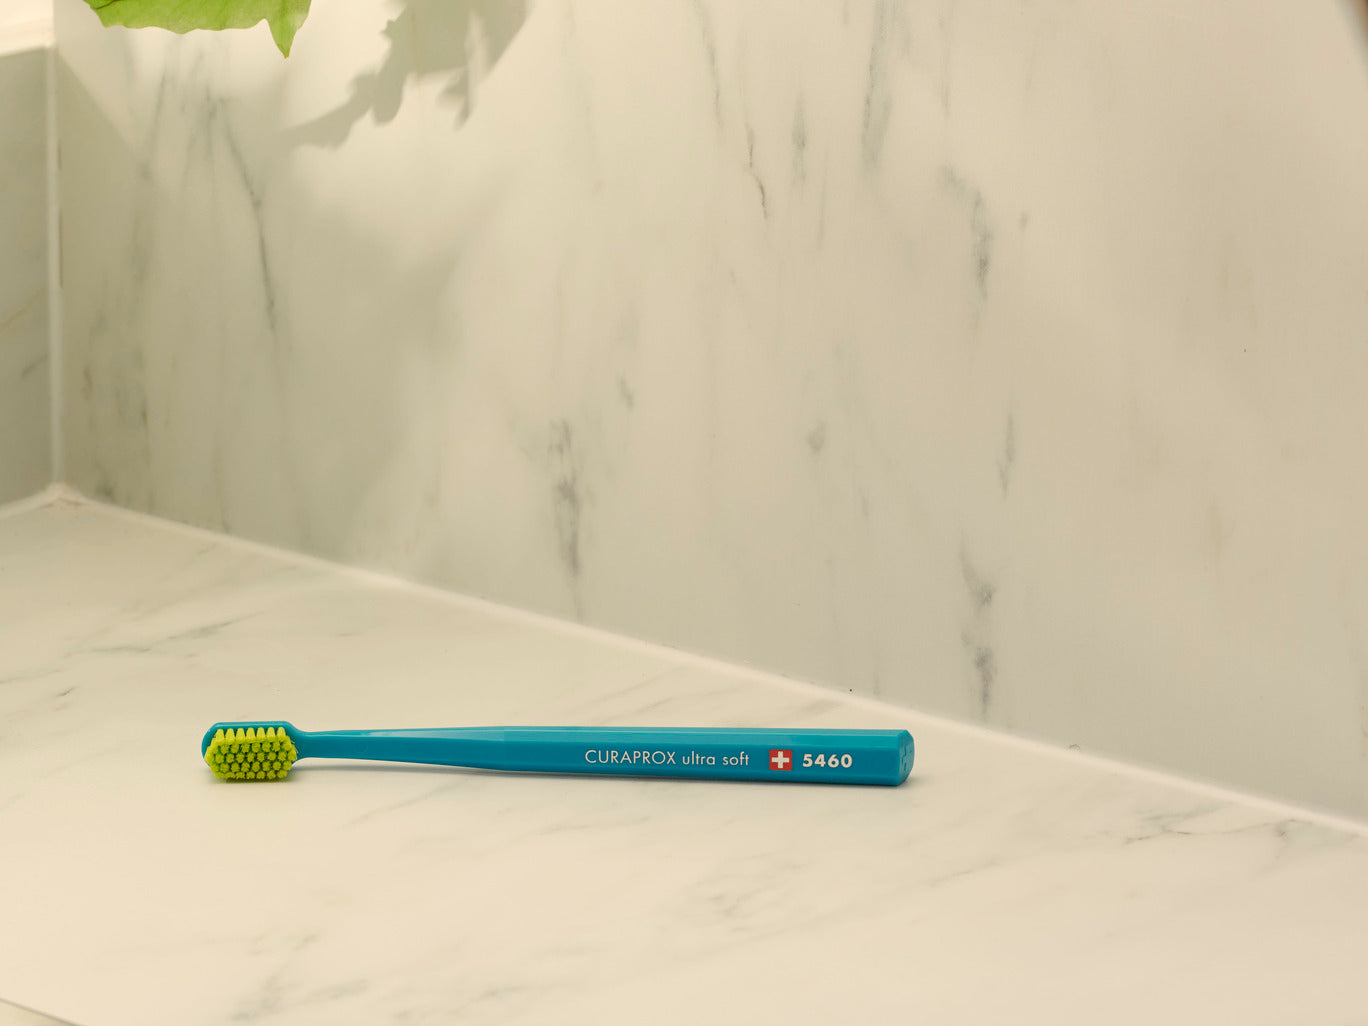 The importance of replacing your toothbrush every three months